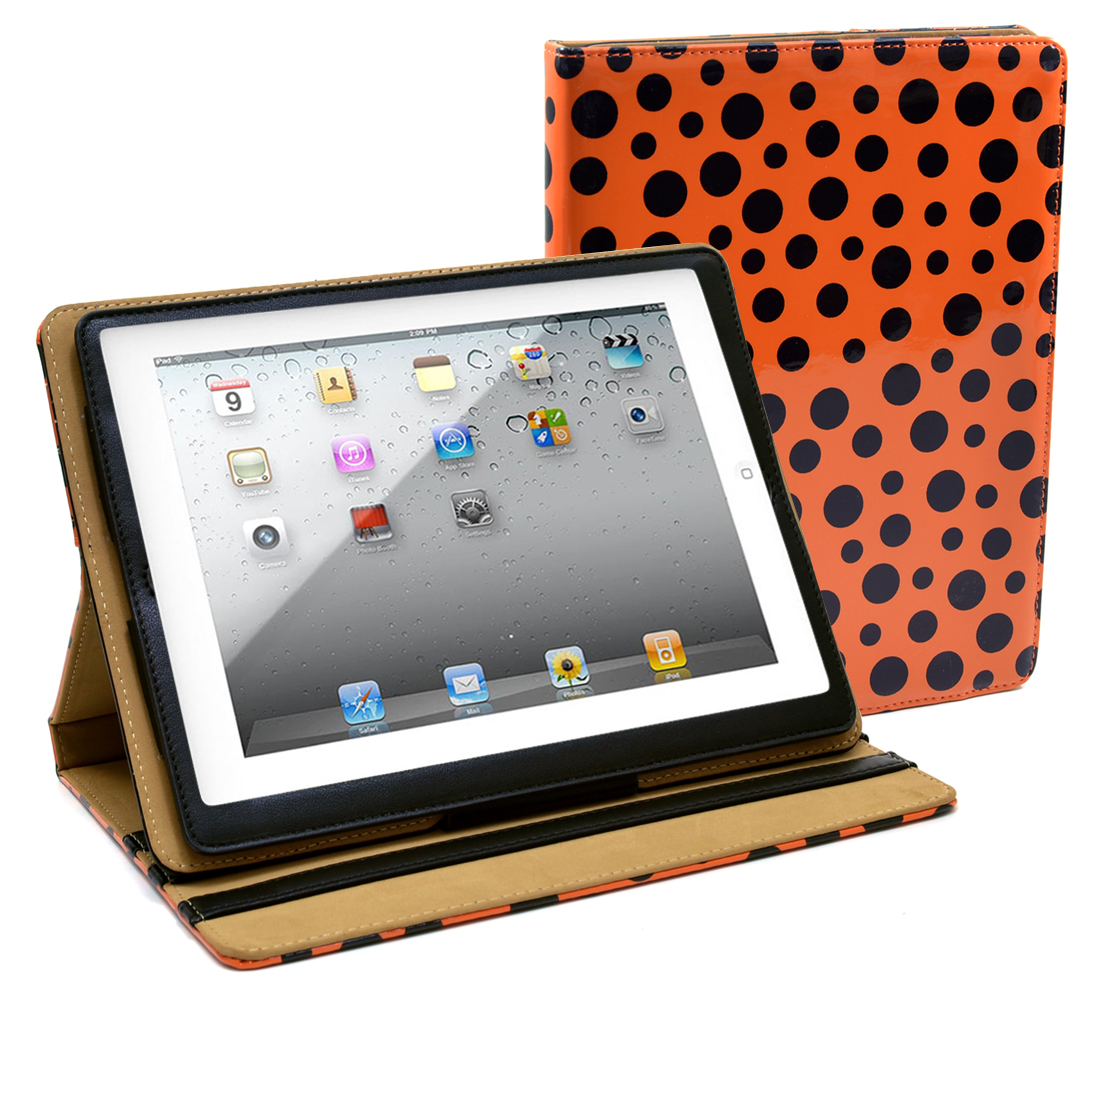 Dasein® Glossy Polka Dot iPad Air / iPad 2 Compatible Case